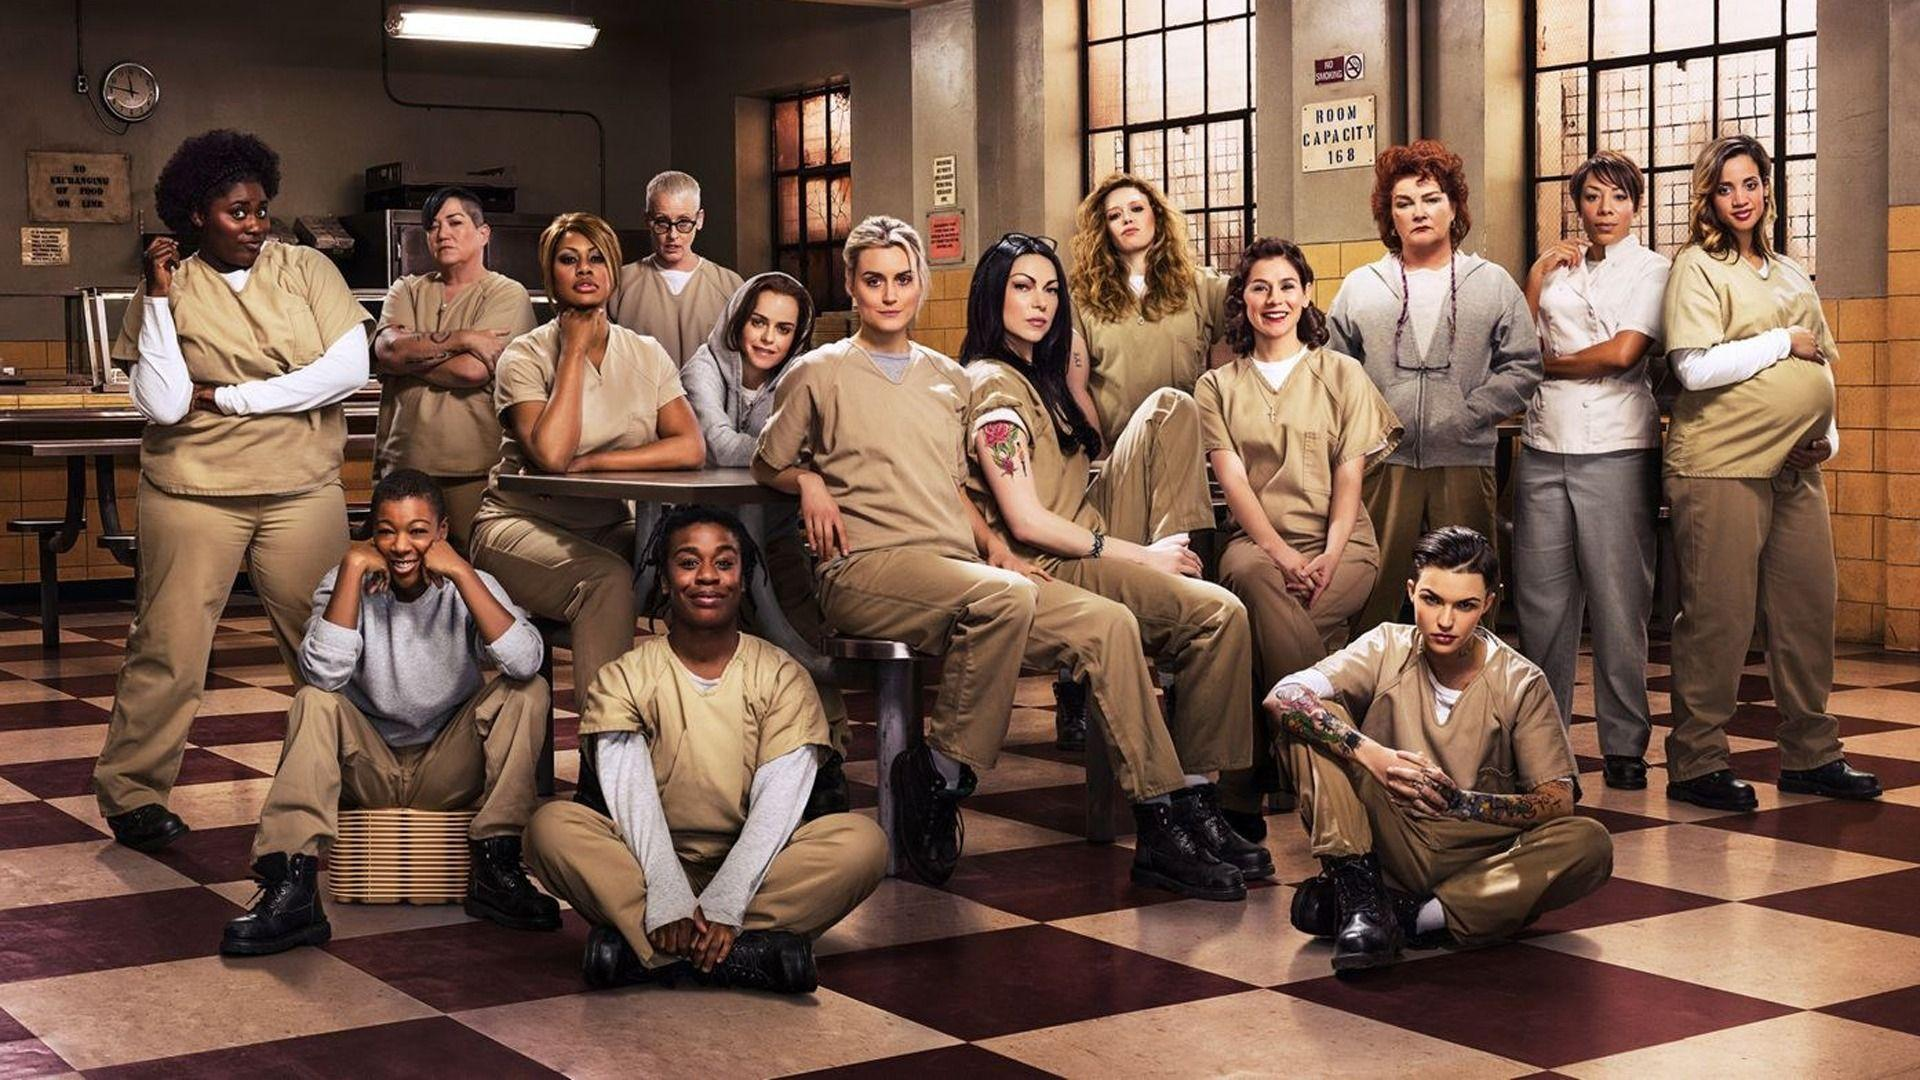 7 Orange Is The New Black HD Wallpapers | Backgrounds - Wallpaper ...